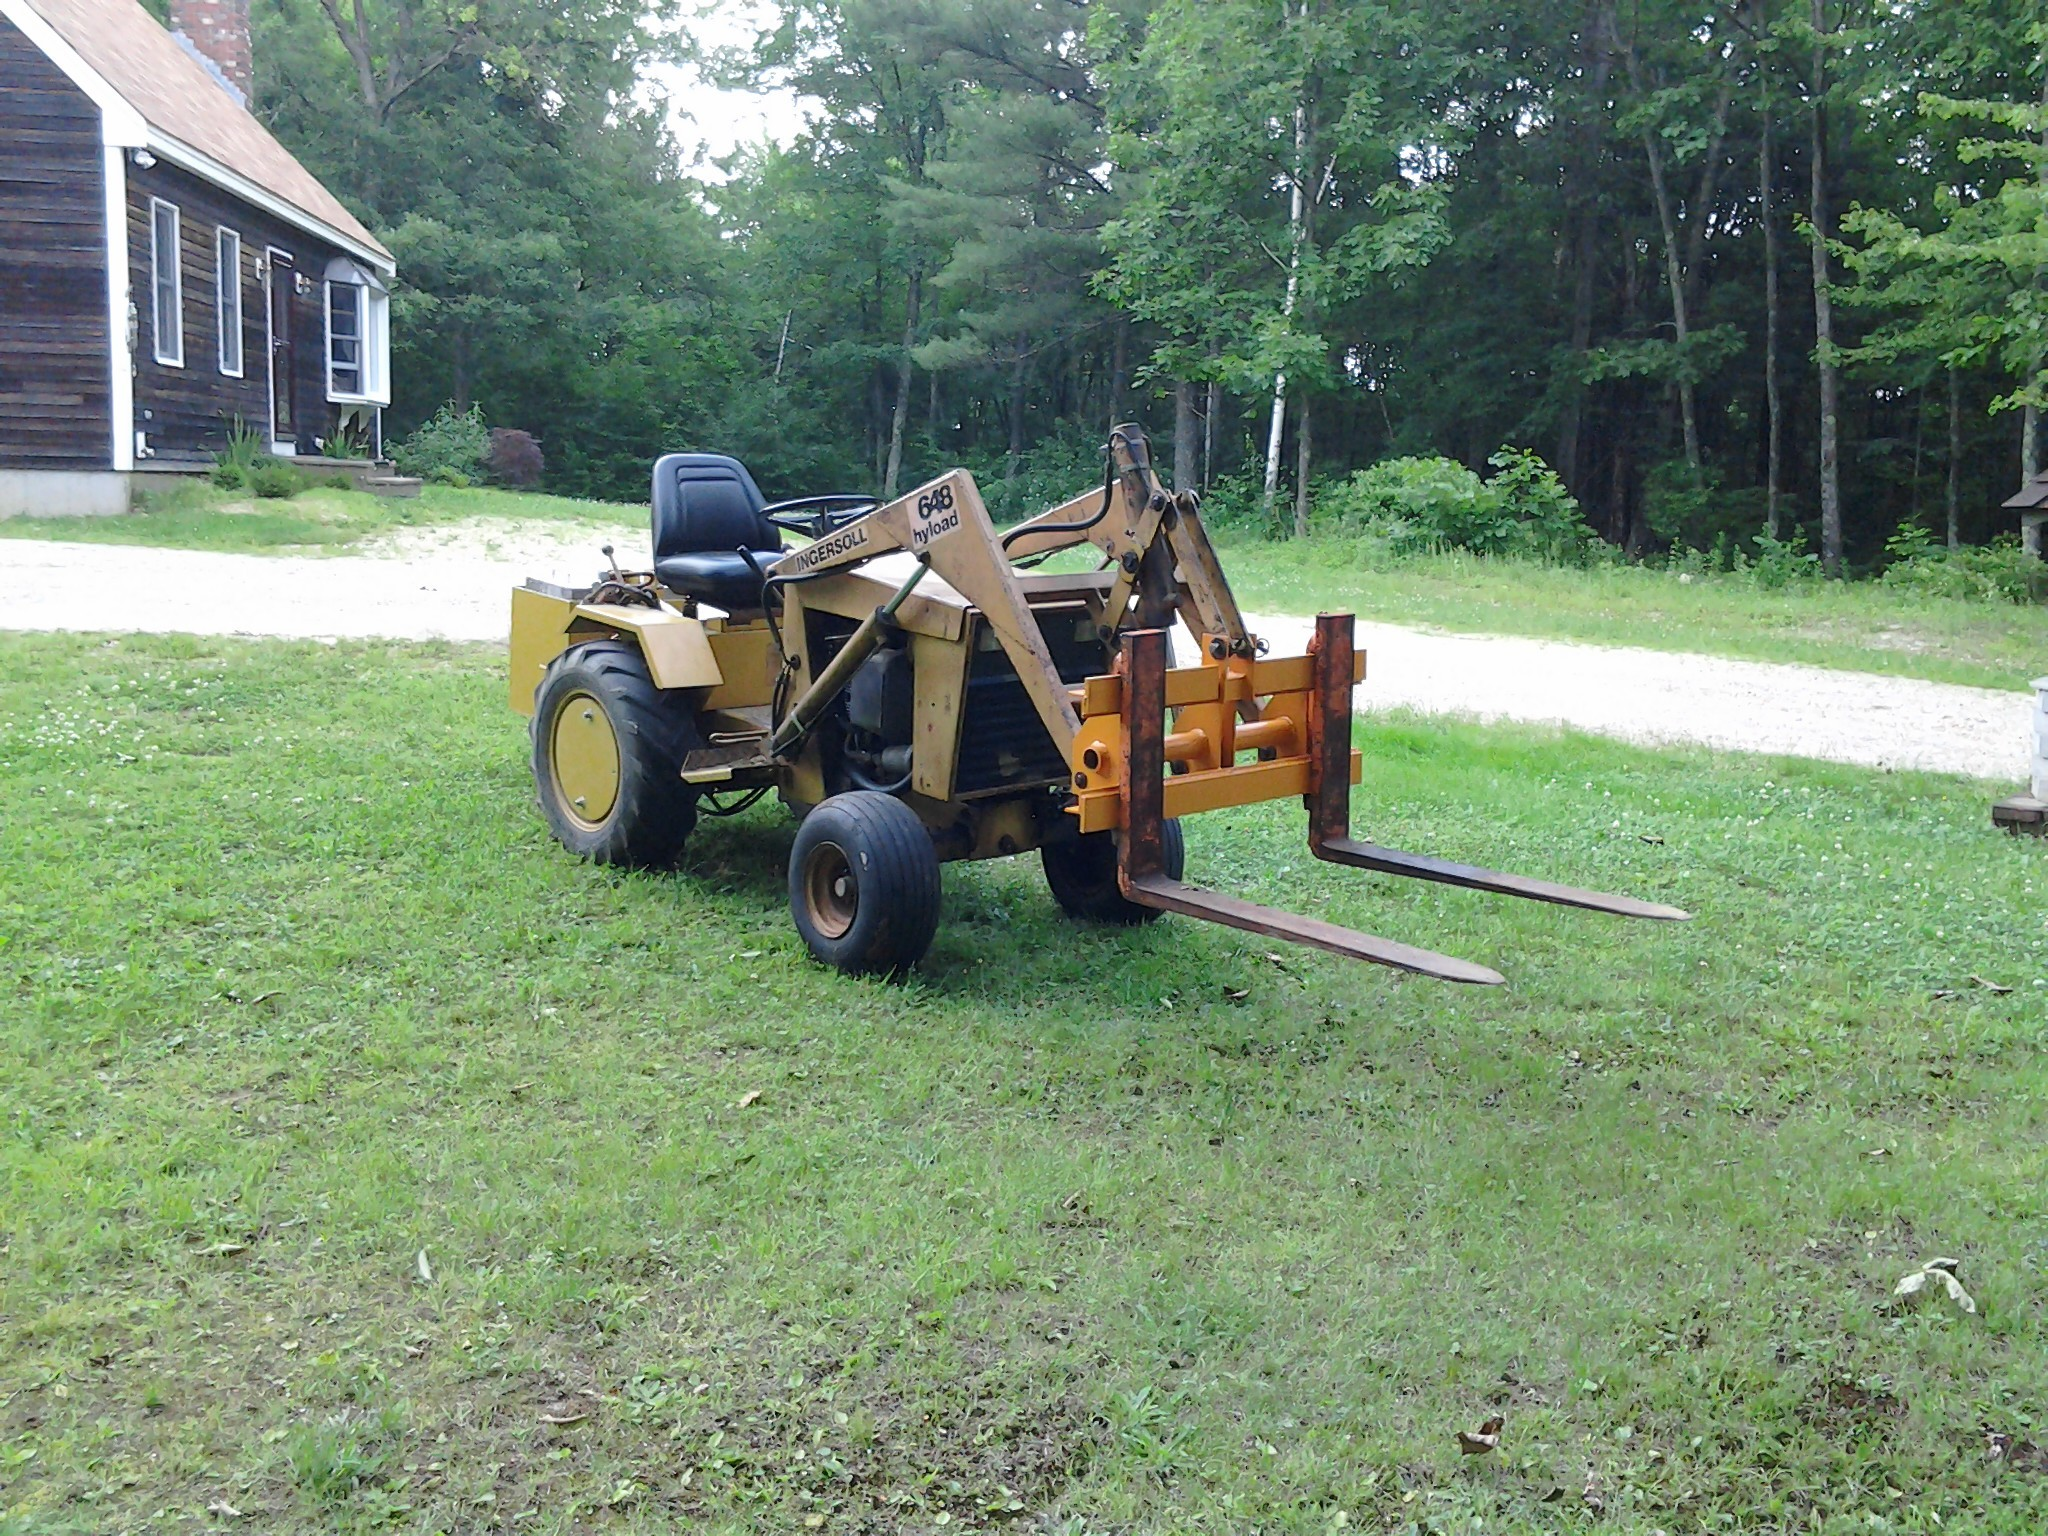 Homemade Tractor Bumper : Your attachments homemade or factory page mytractorforum the friendliest tractor